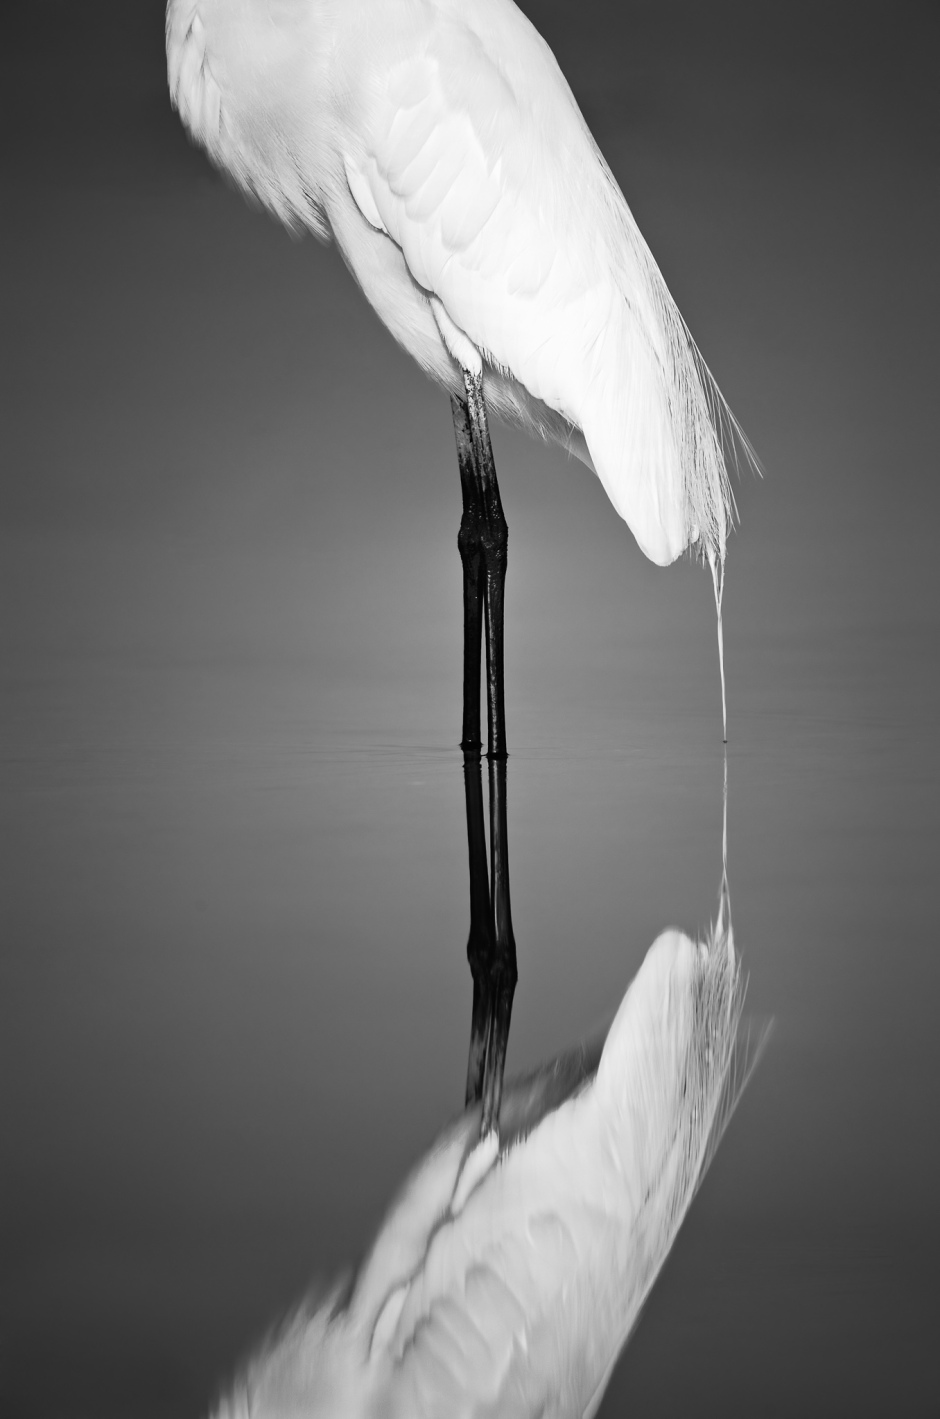 Great Egret Photo by Scott Bourne